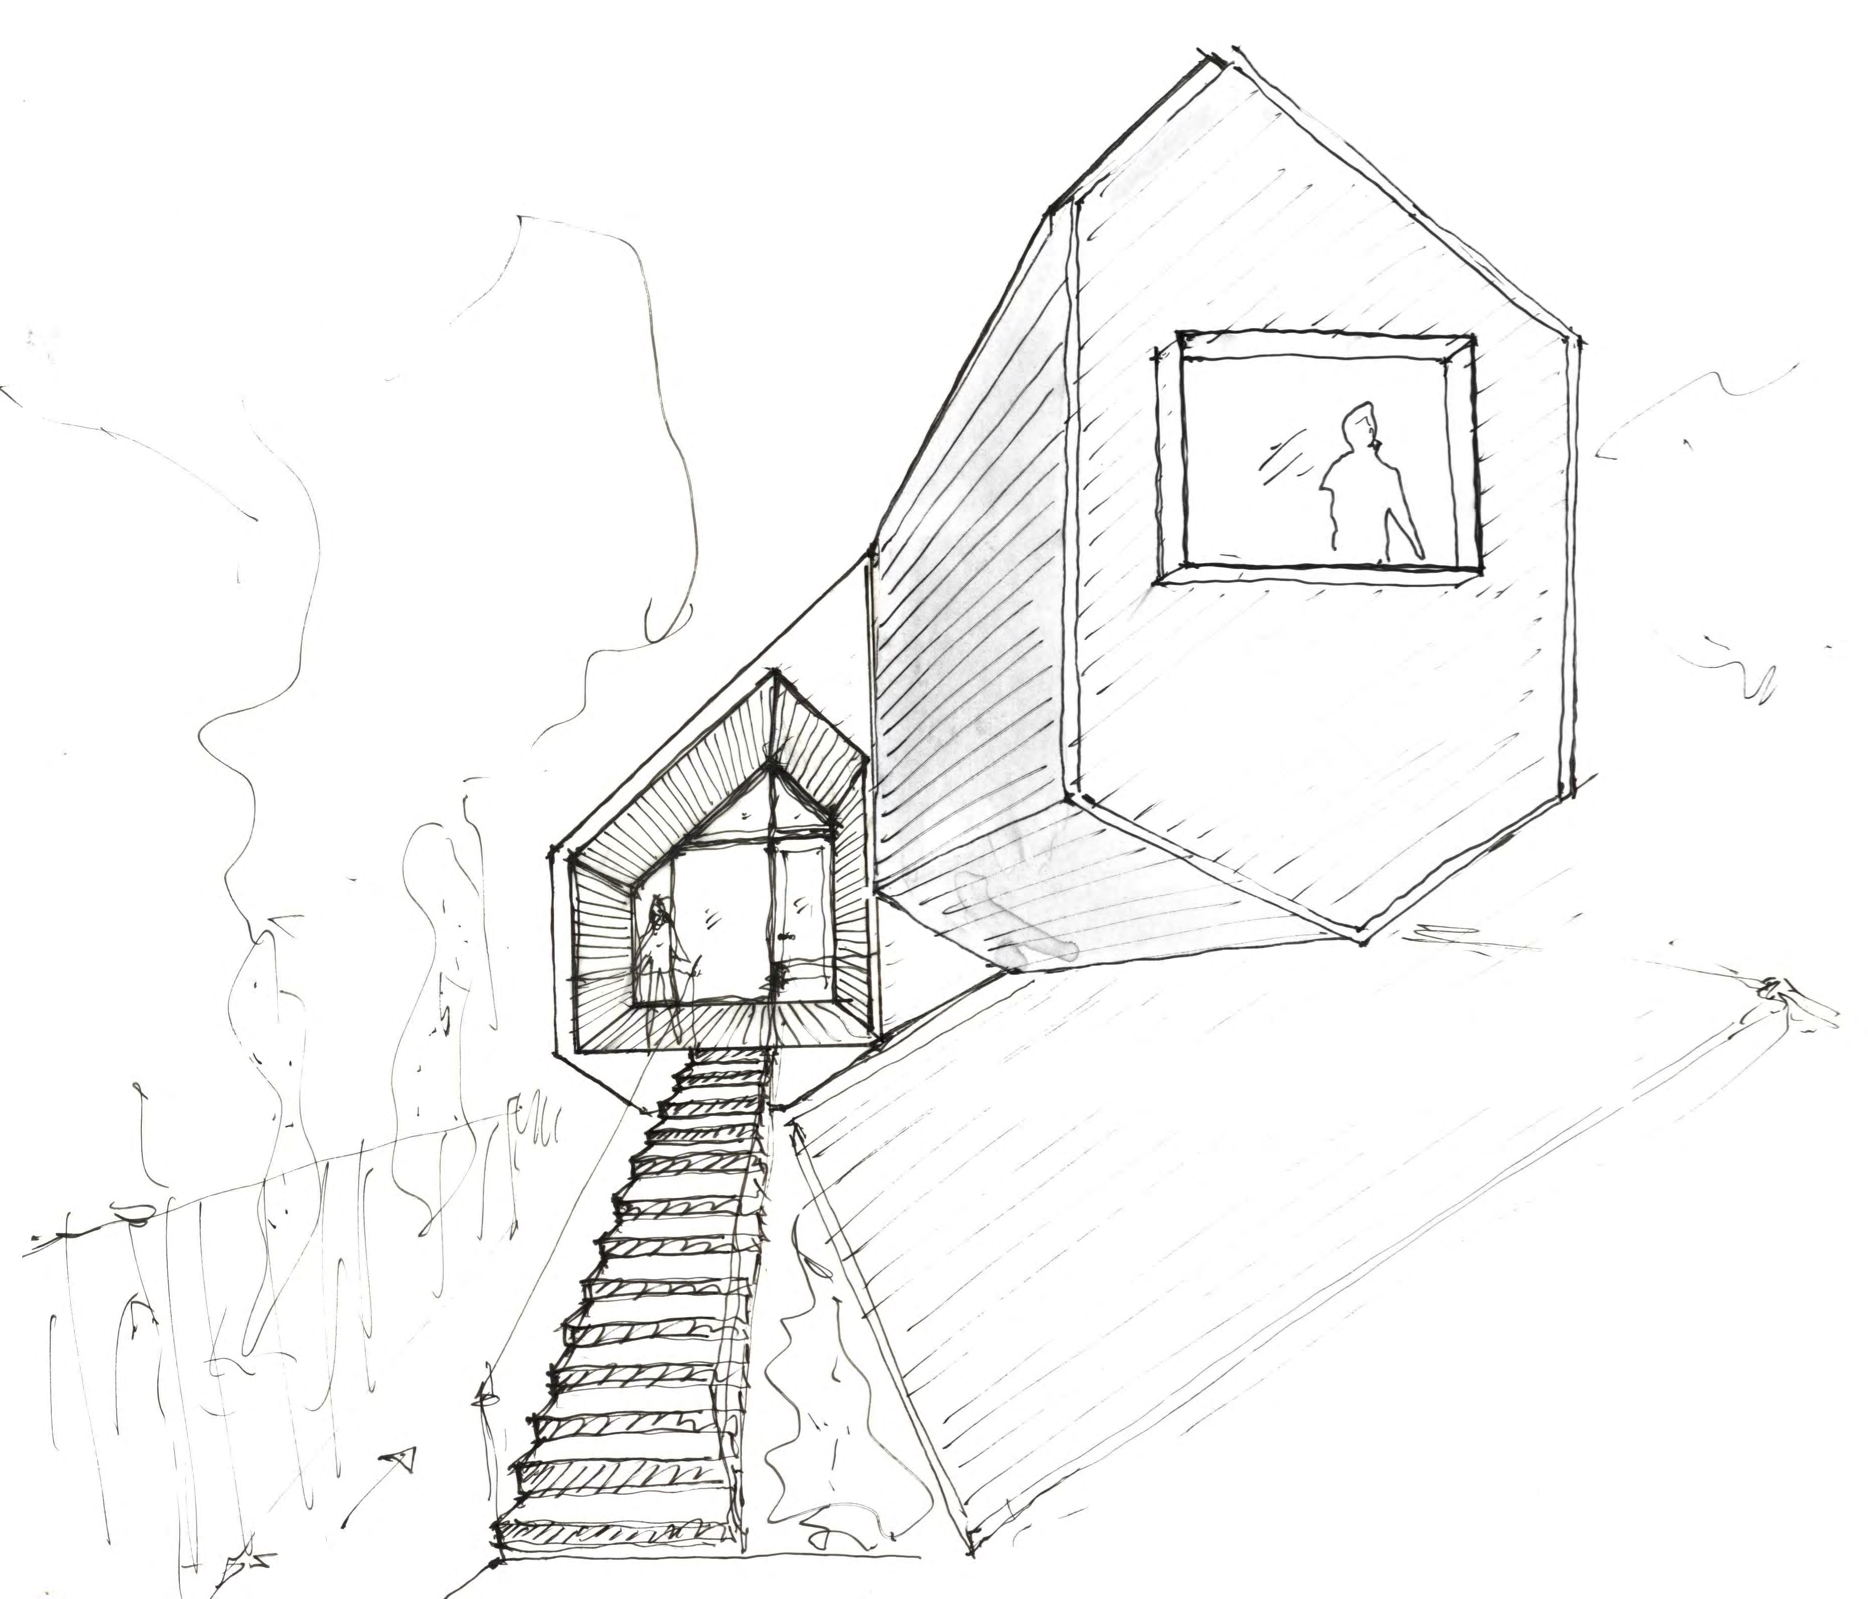 The Perch schematic design meeting sketch